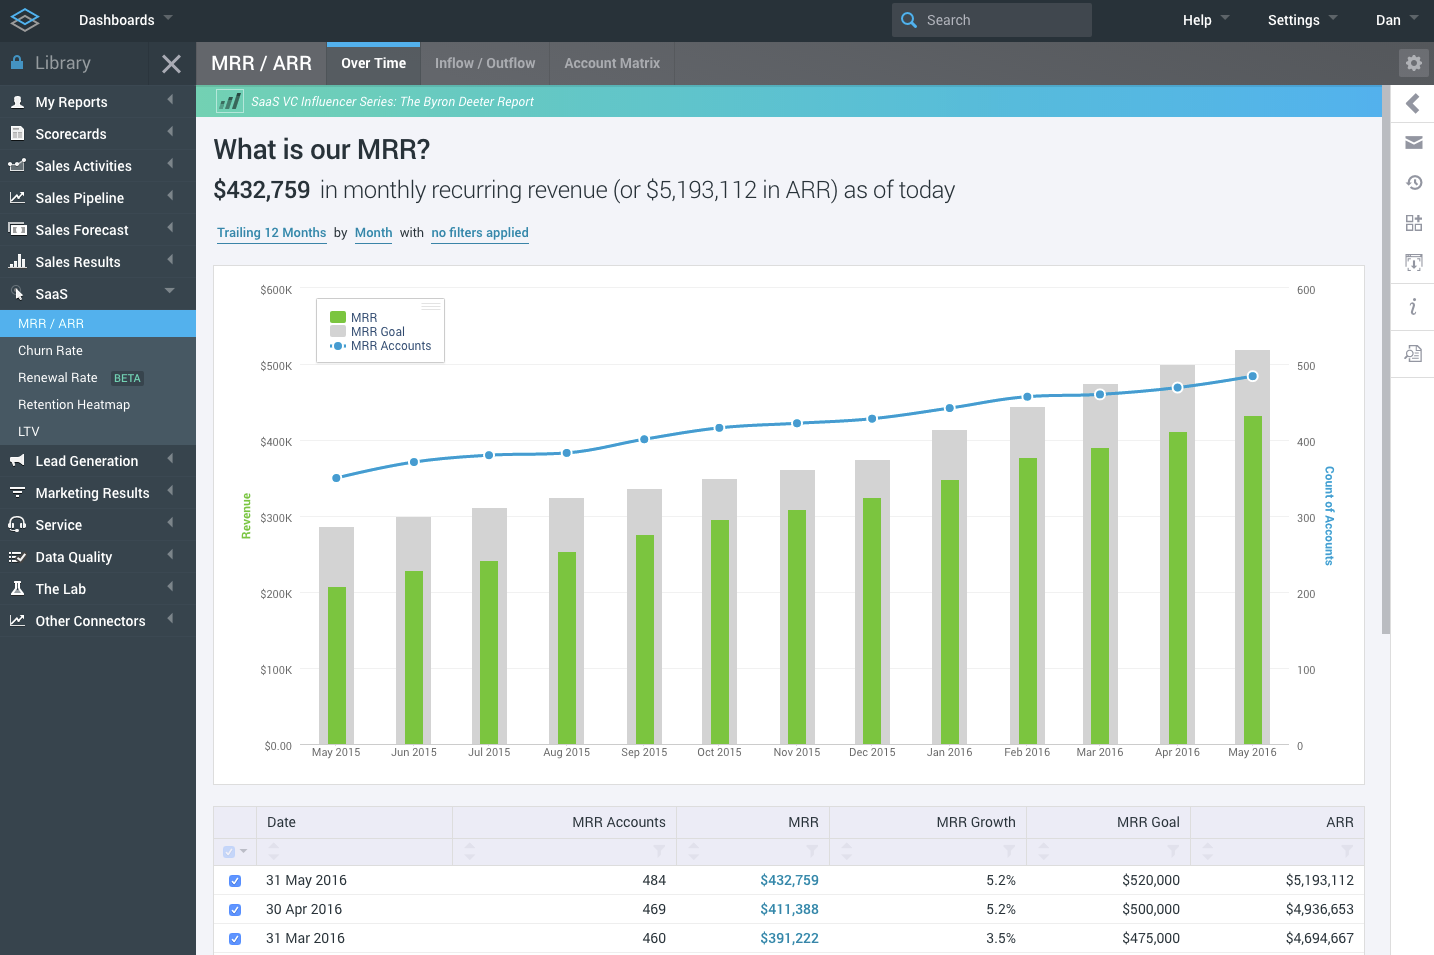 SaaS Metrics like MRR, Churn, LTV, and more